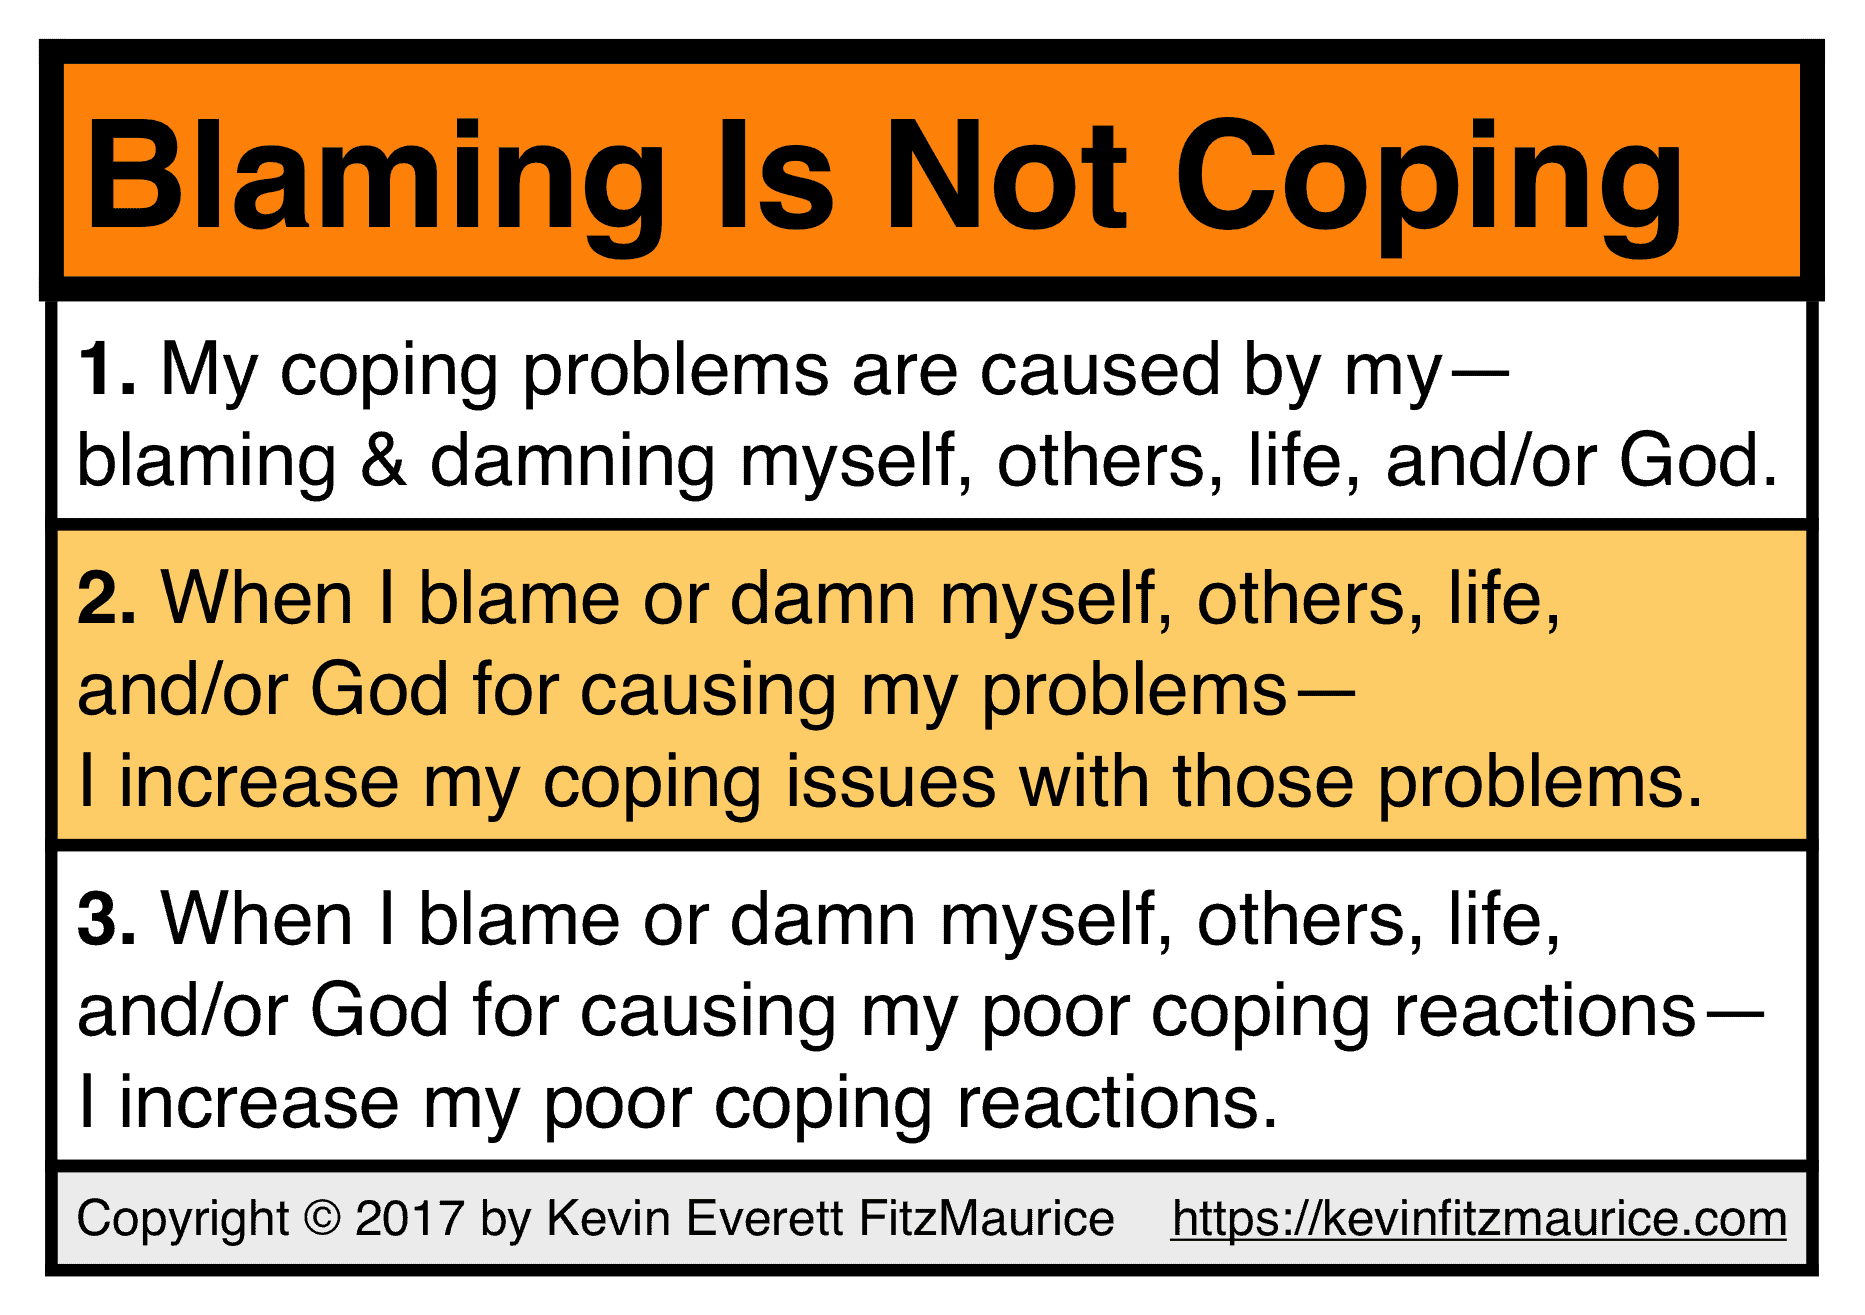 Blaming Is Not Coping